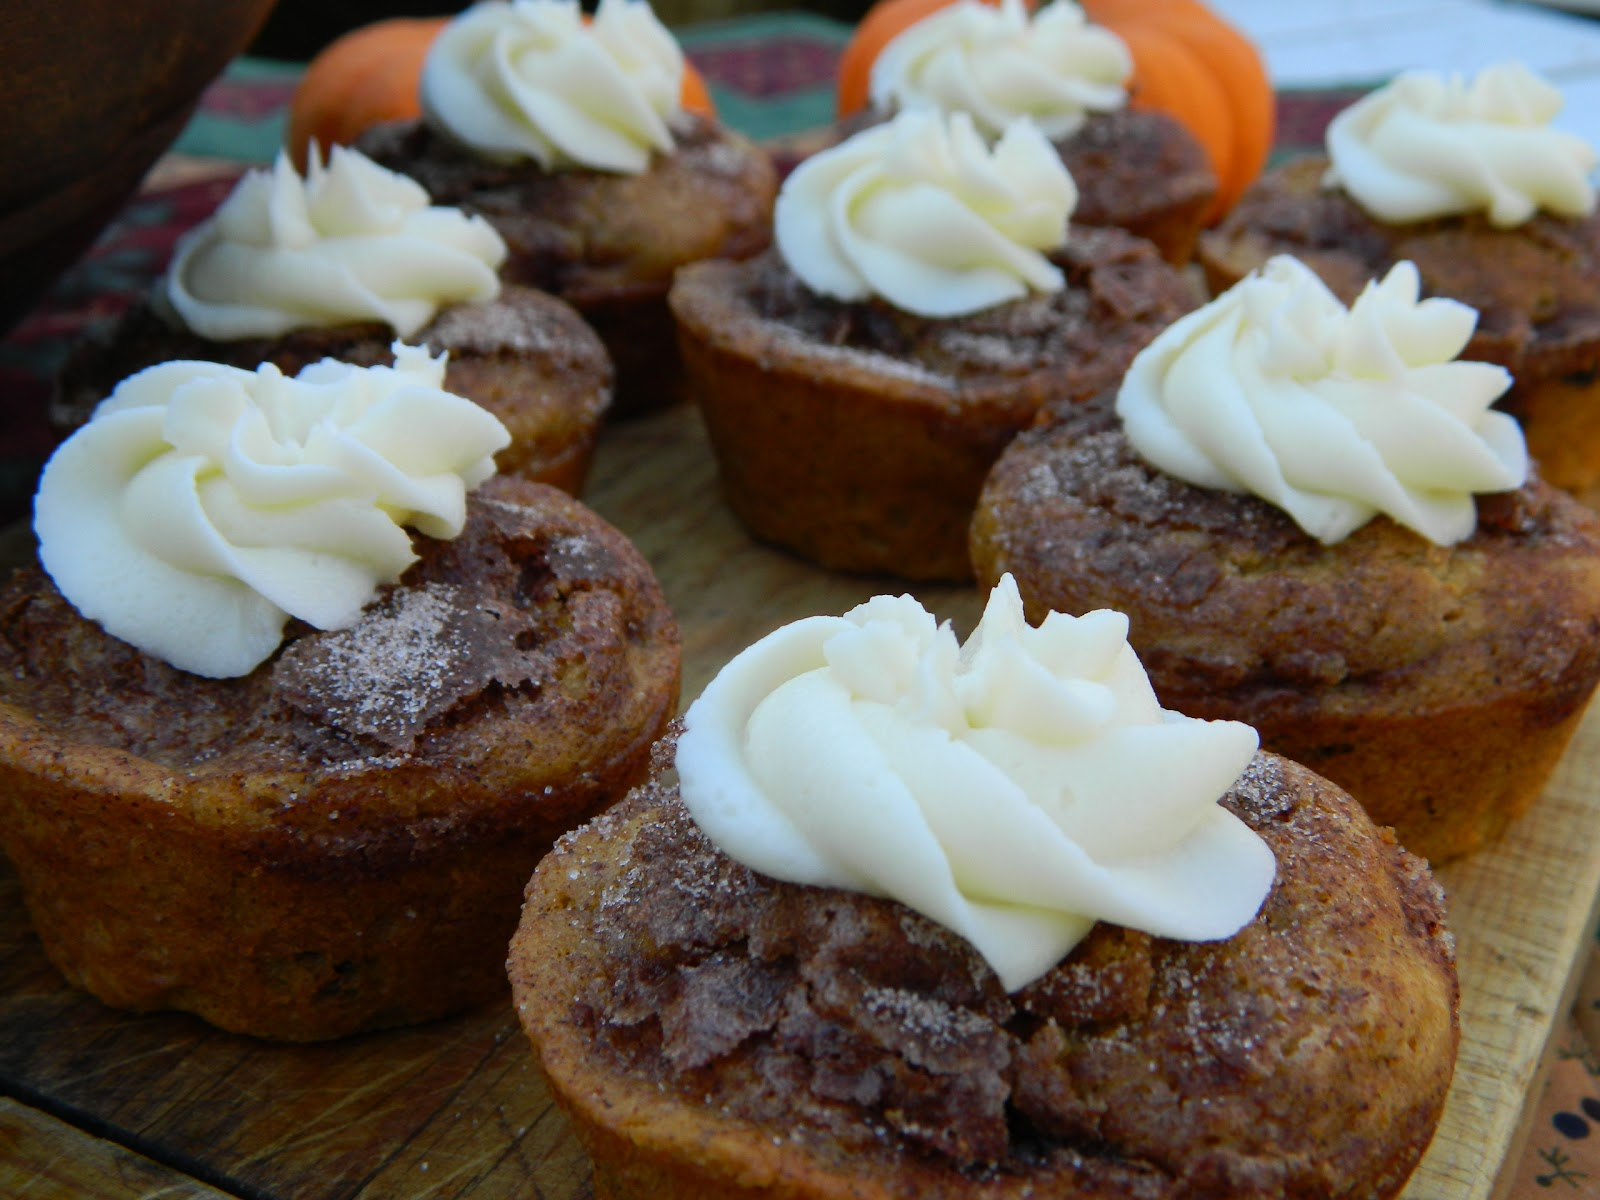 The Wednesday Baker: THE PIONEER WOMAN PUMKPIN SPICE MUFFINS